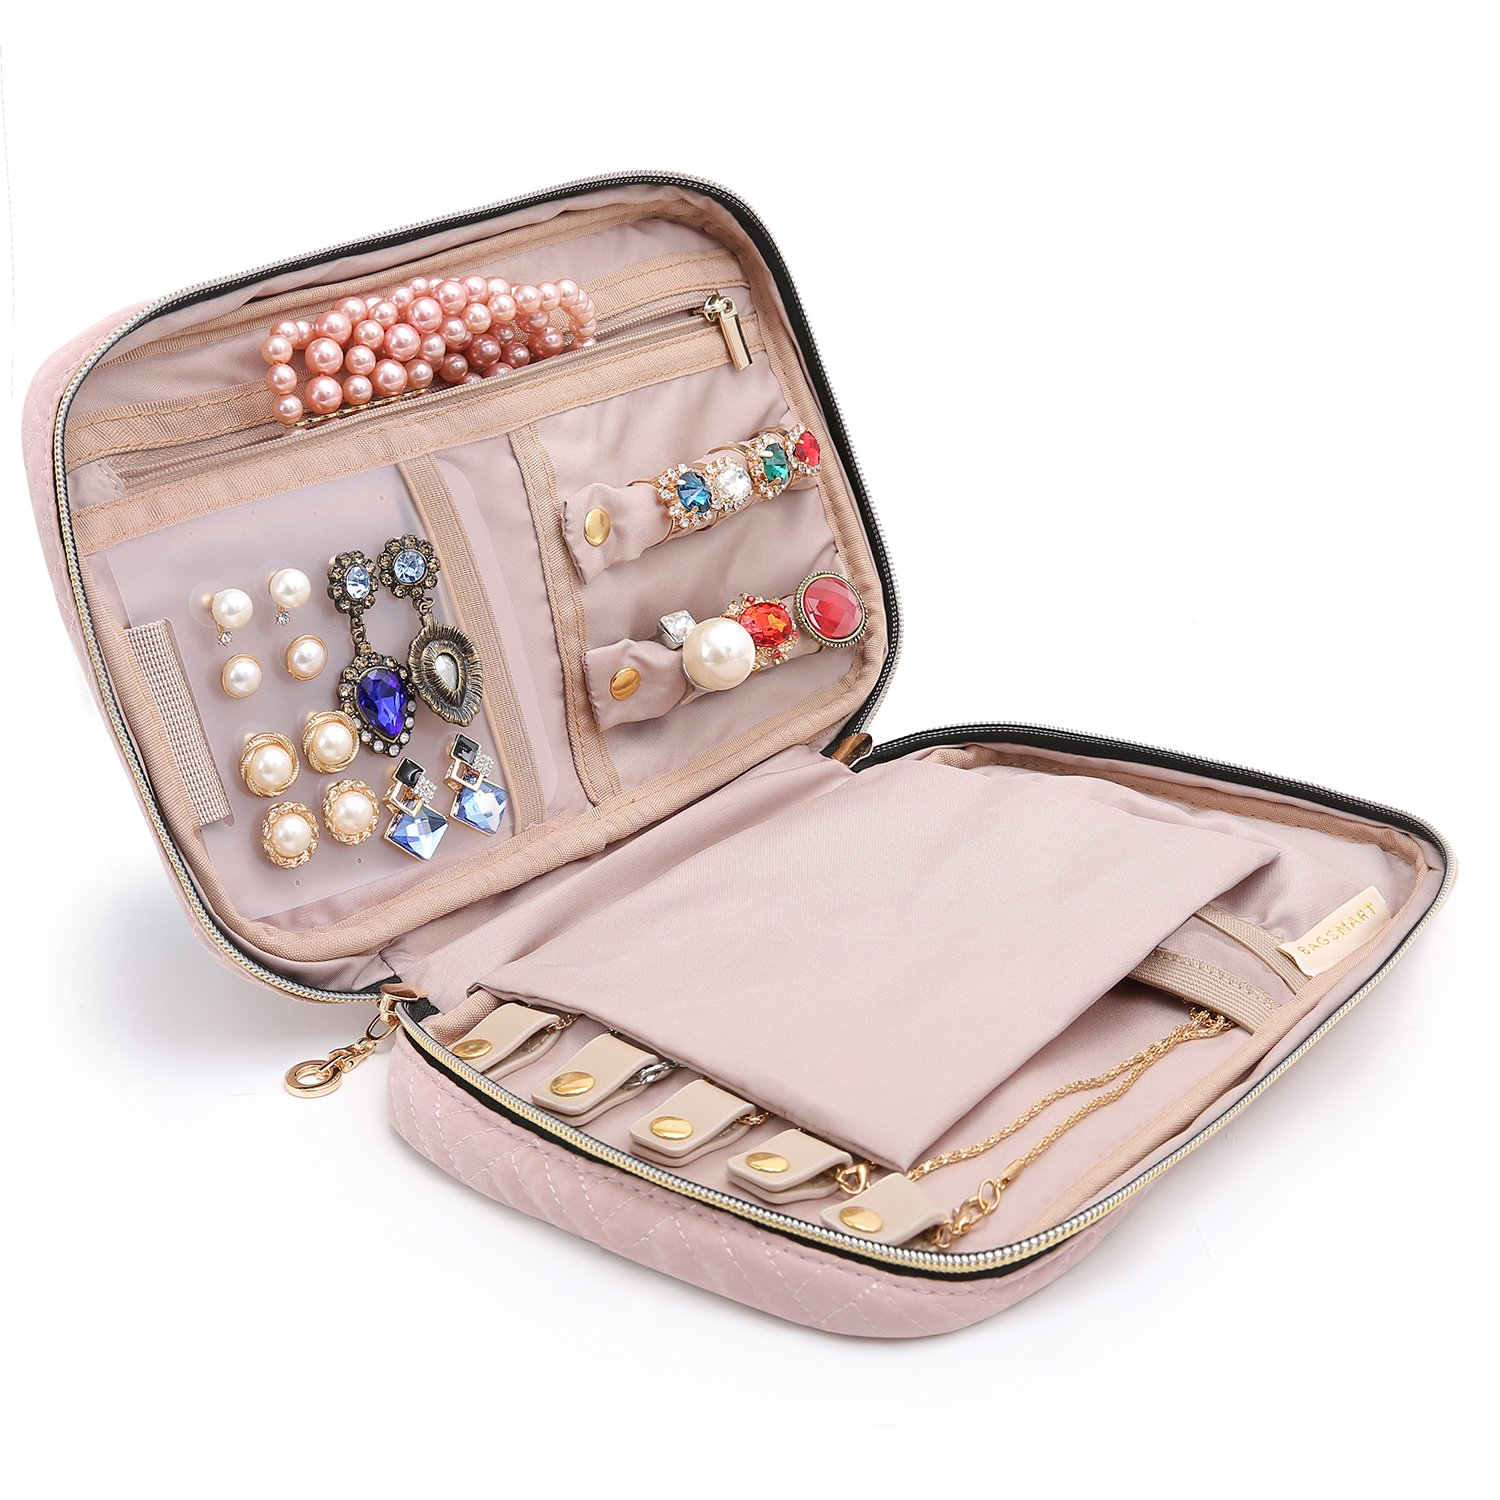 bagsmart Jewelry Organizer Bag Travel Jewelry Storage Cases for Necklace, Earrings, Rings, Bracelet, Pink by bagsmart